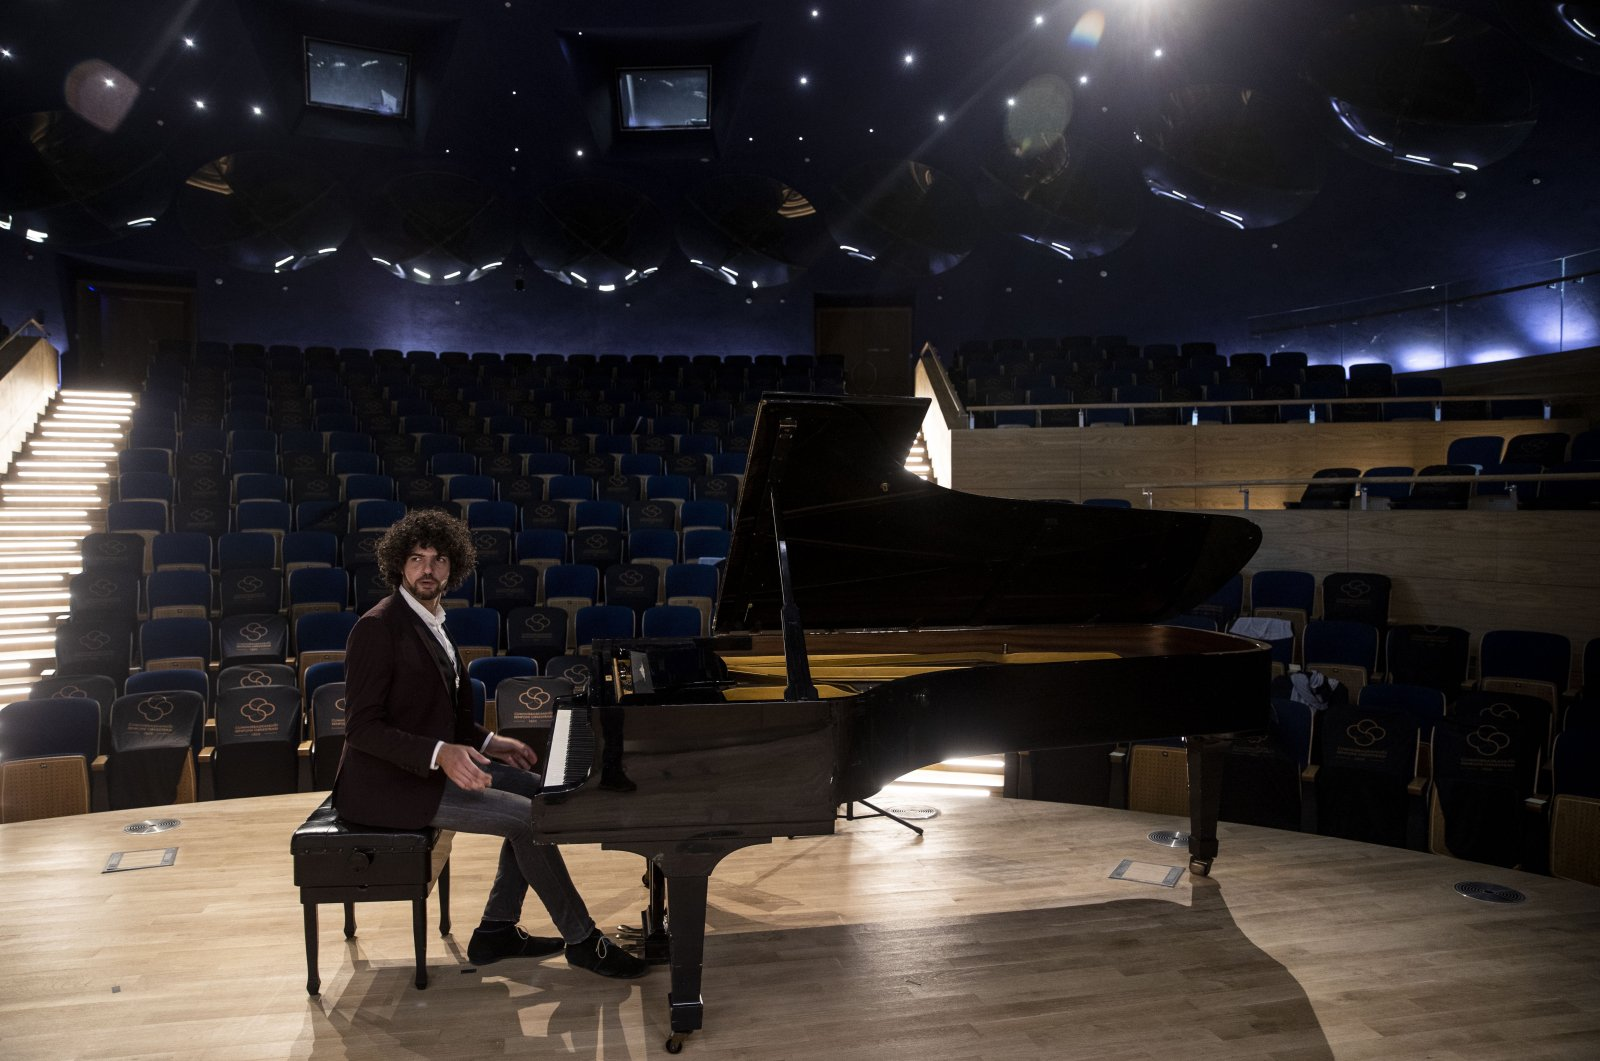 French pianist Simon Ghraichy poses with a piano at the Presidential Symphony Orchestra's concert hall, Ankara, Turkey, Sept. 8, 2021. (AA Photo)